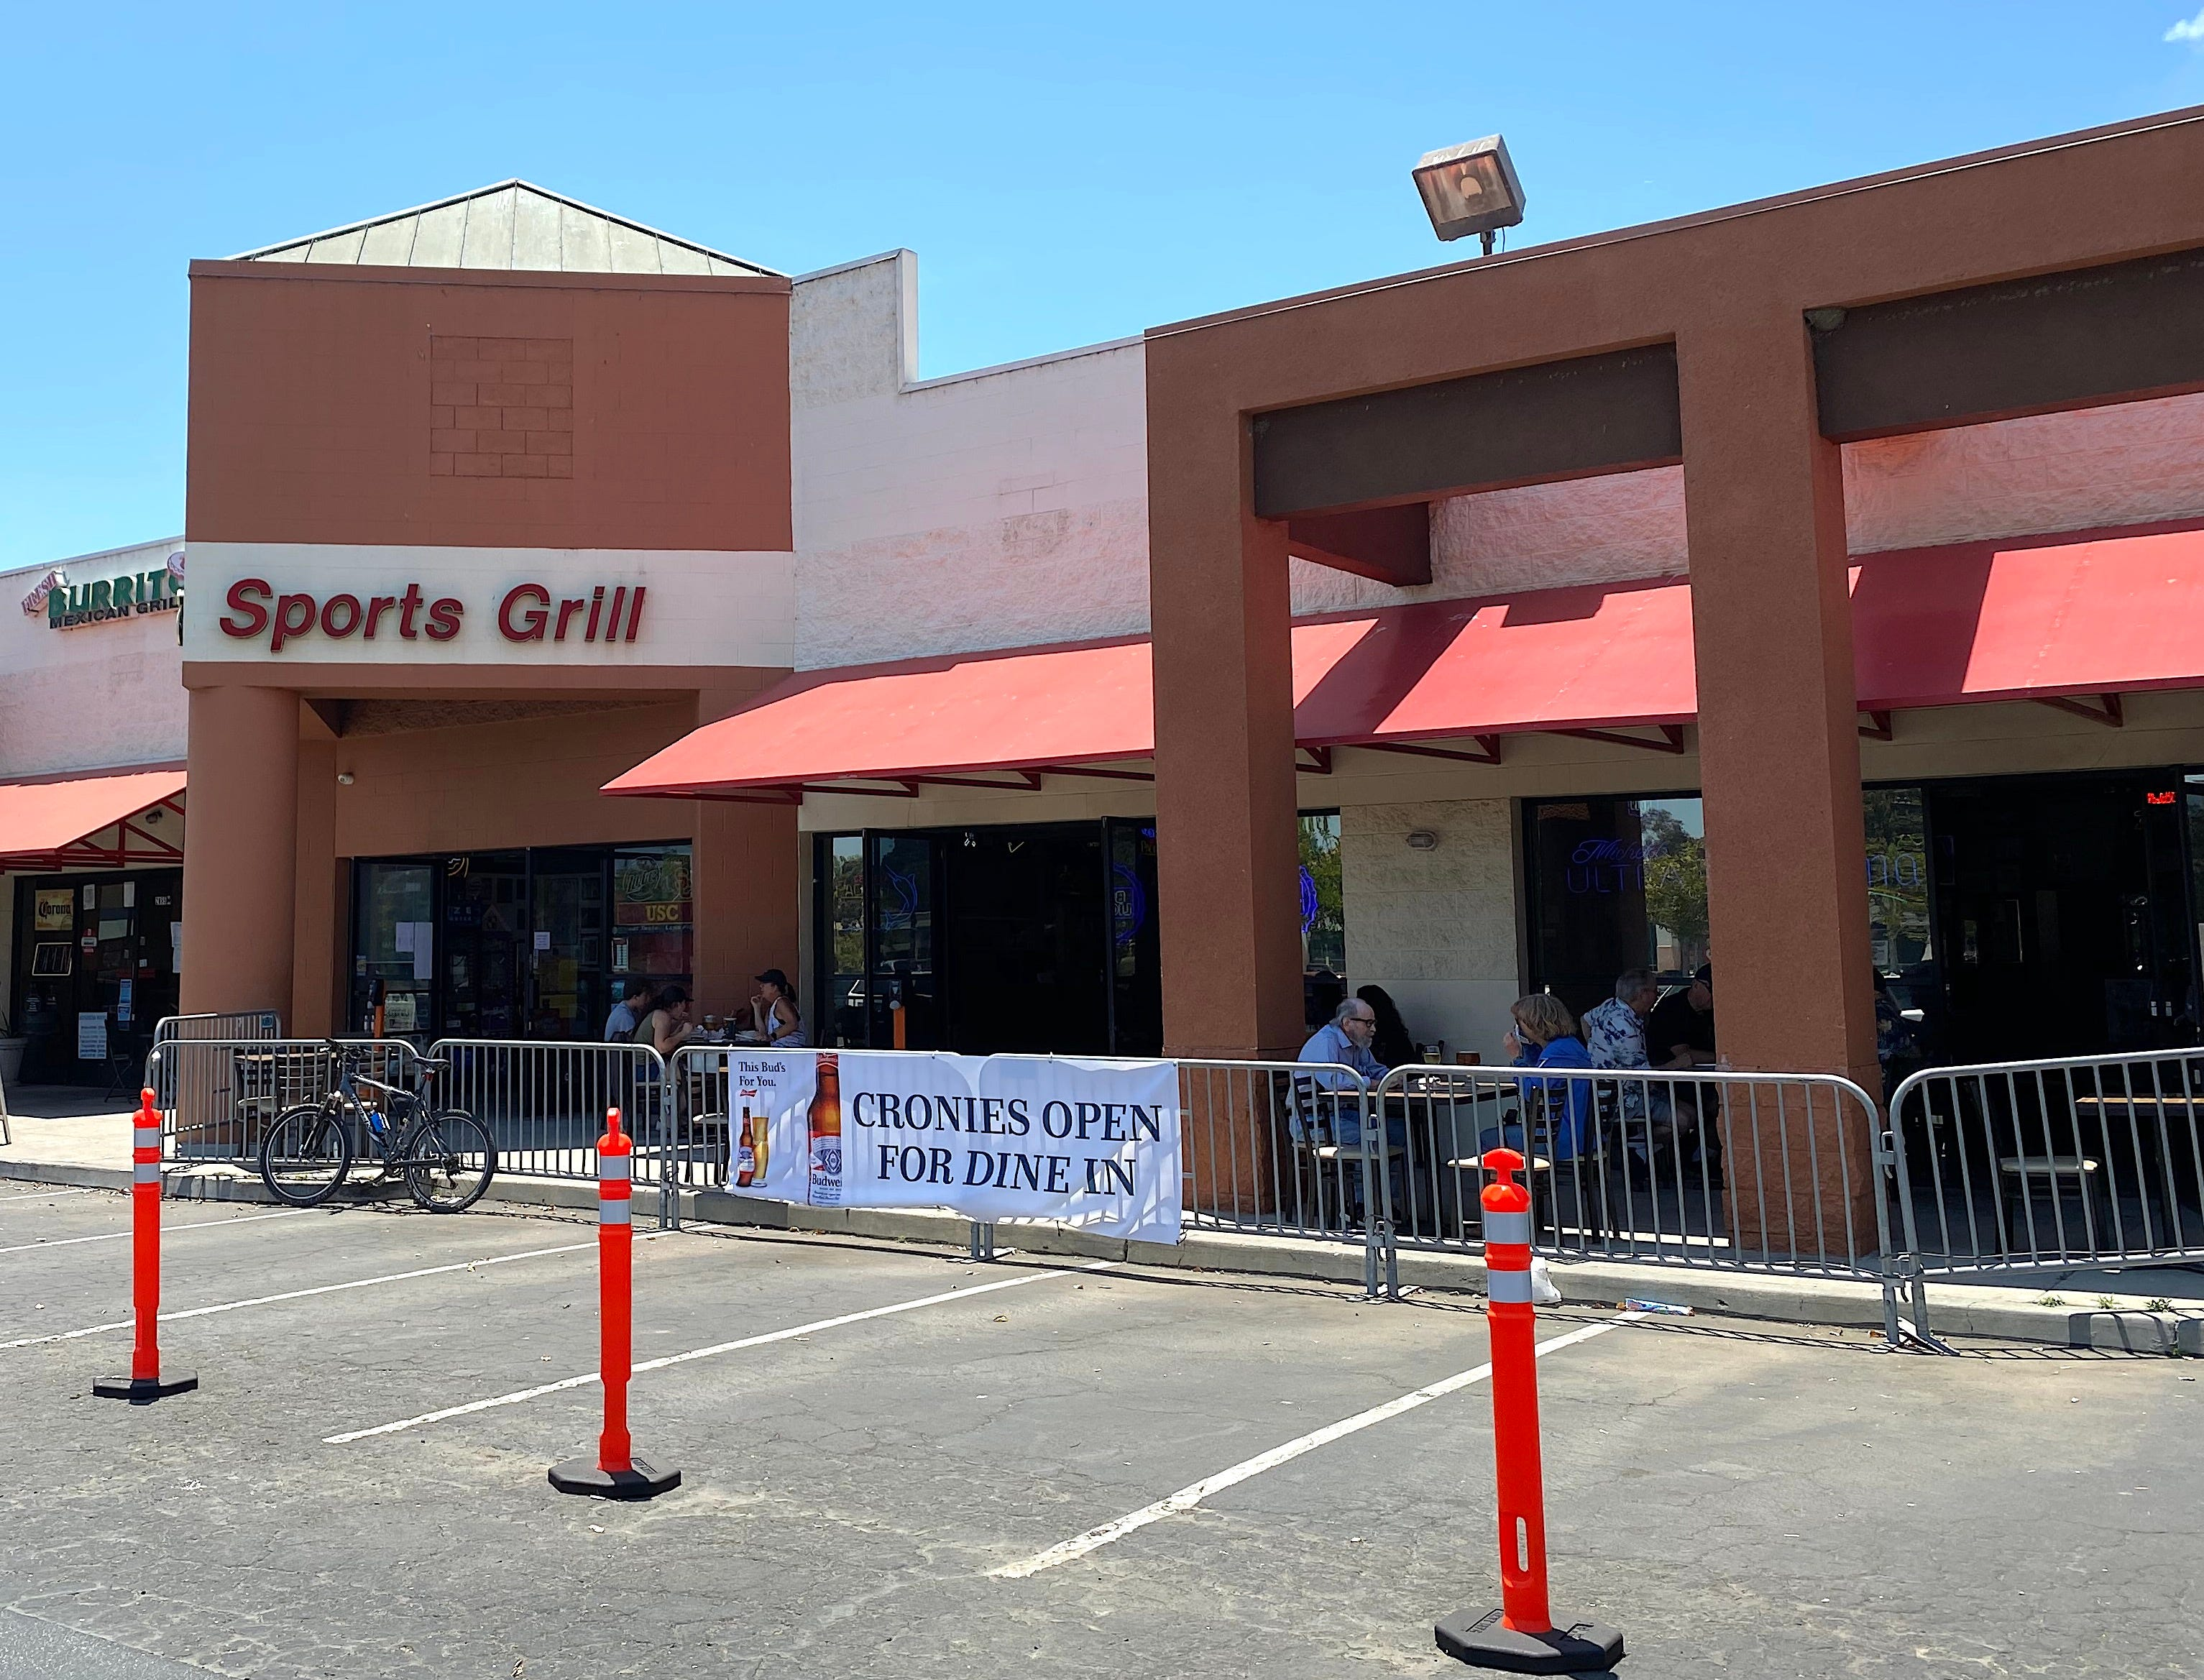 Restaurants Open On Christmas Day 2020 Ventura County Ventura County restaurants ease into dine in service, limited seating